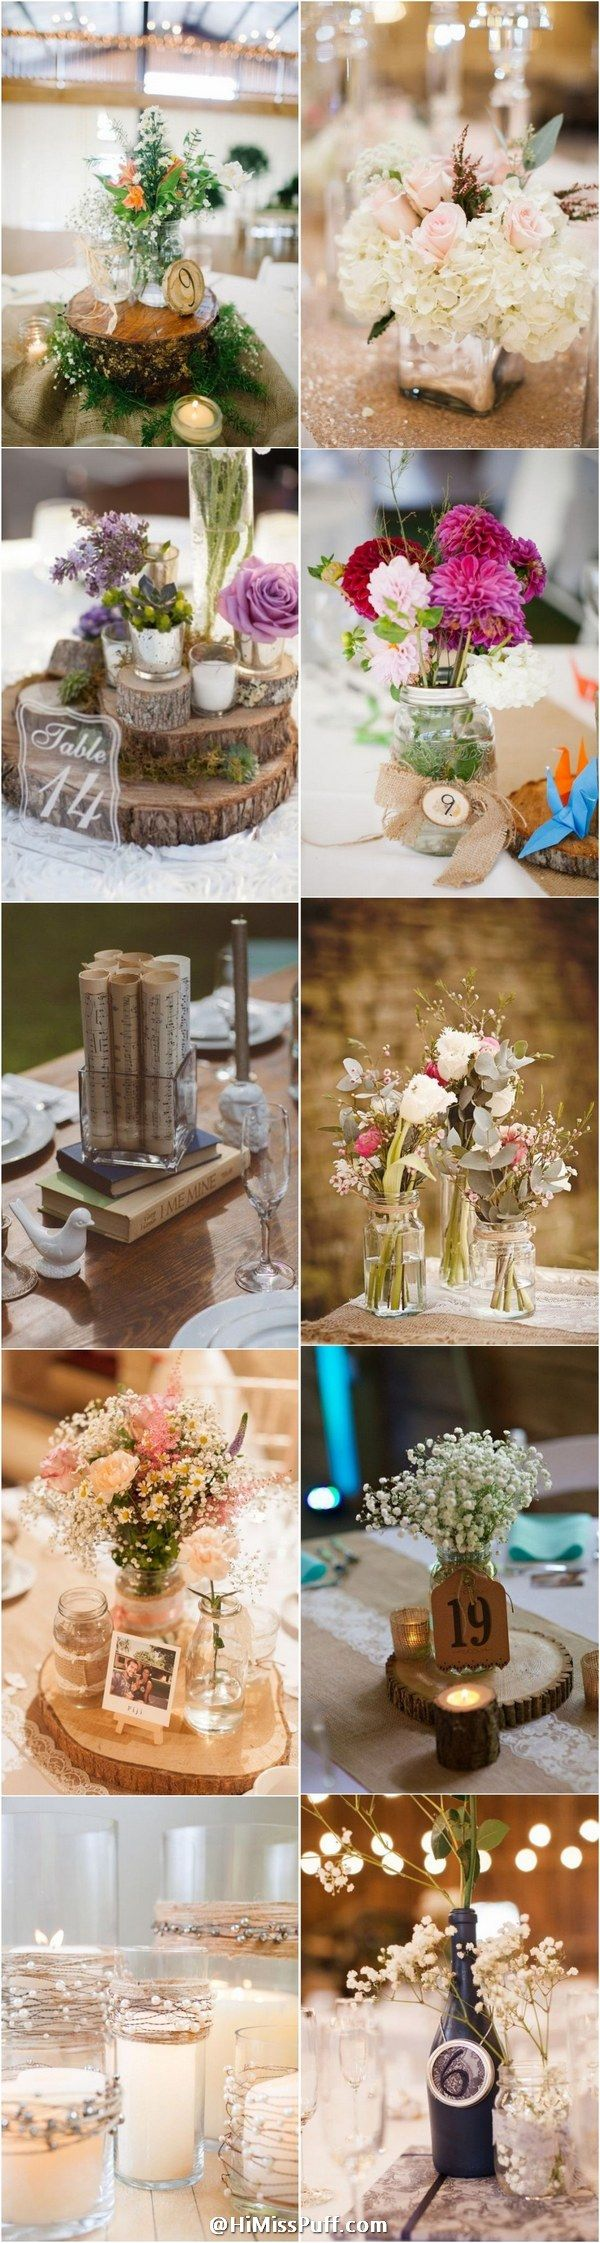 Rustic Country Wedding Centerpieces / http://www.himisspuff.com/rustic-wedding-centerpiece-ideas/